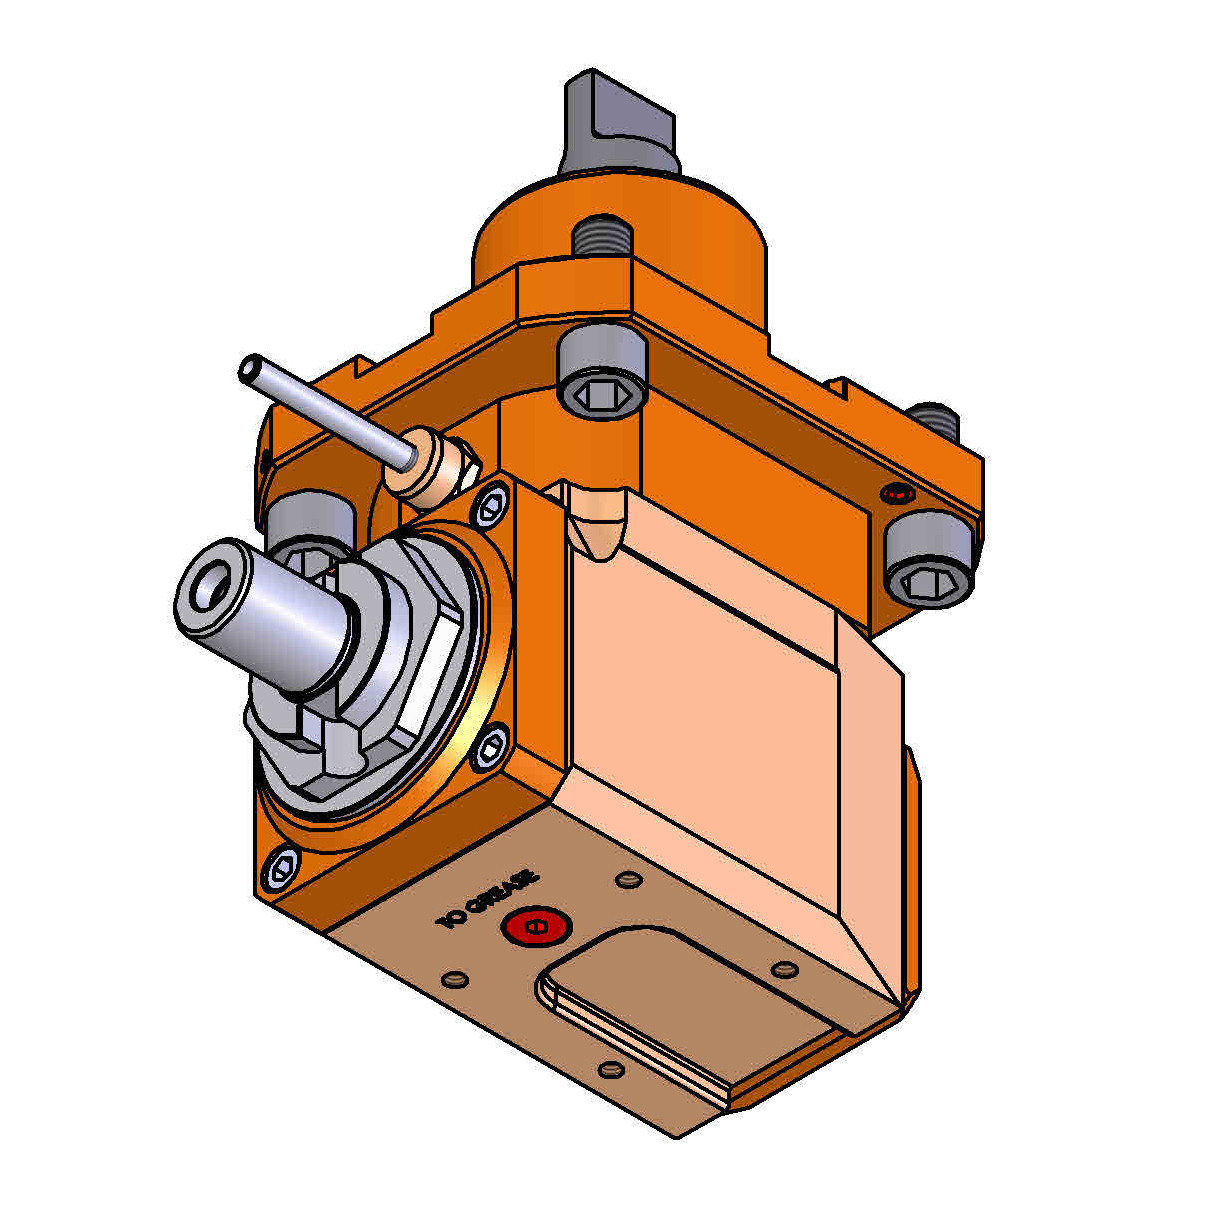 CYLINDRICAL SHANK 60 Driven Tool Holder.